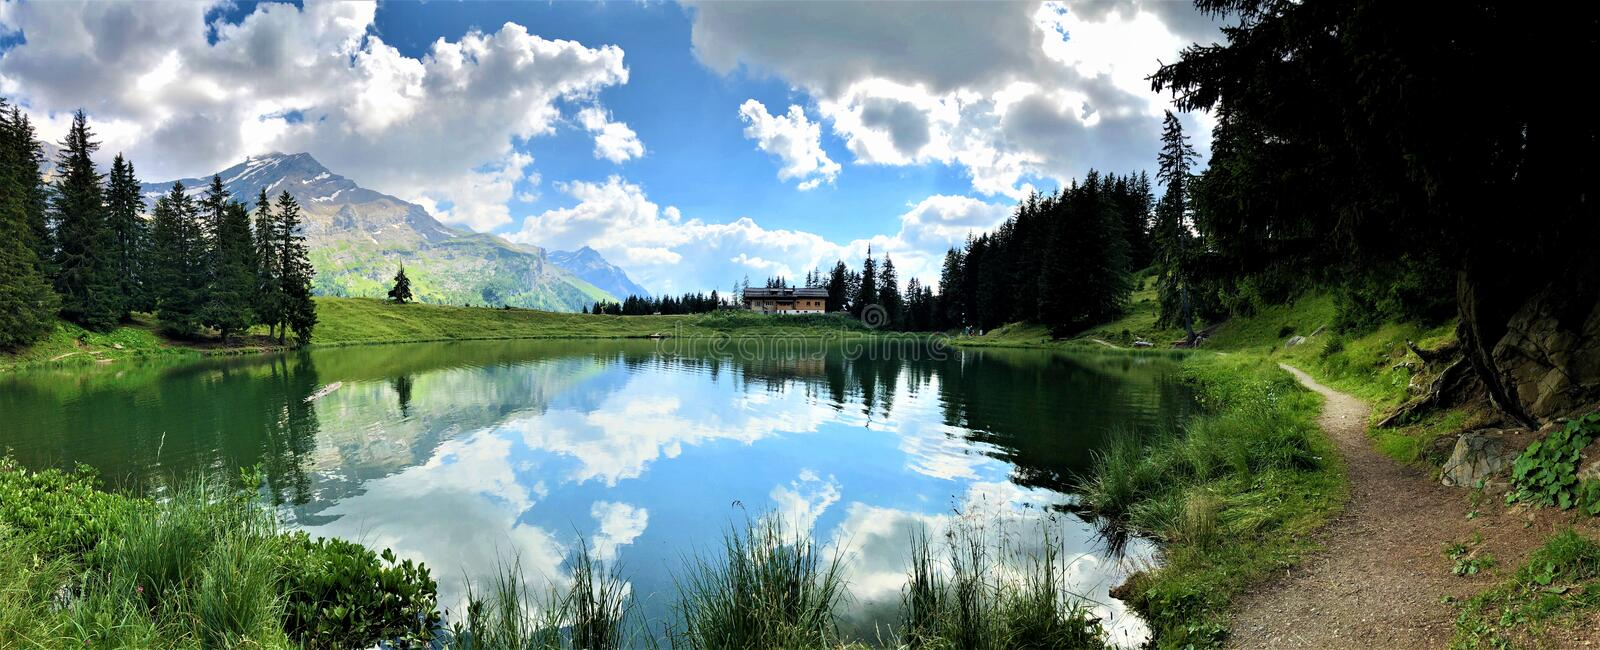 Amazing view of a small mountain lake, mirror effect royalty free stock images